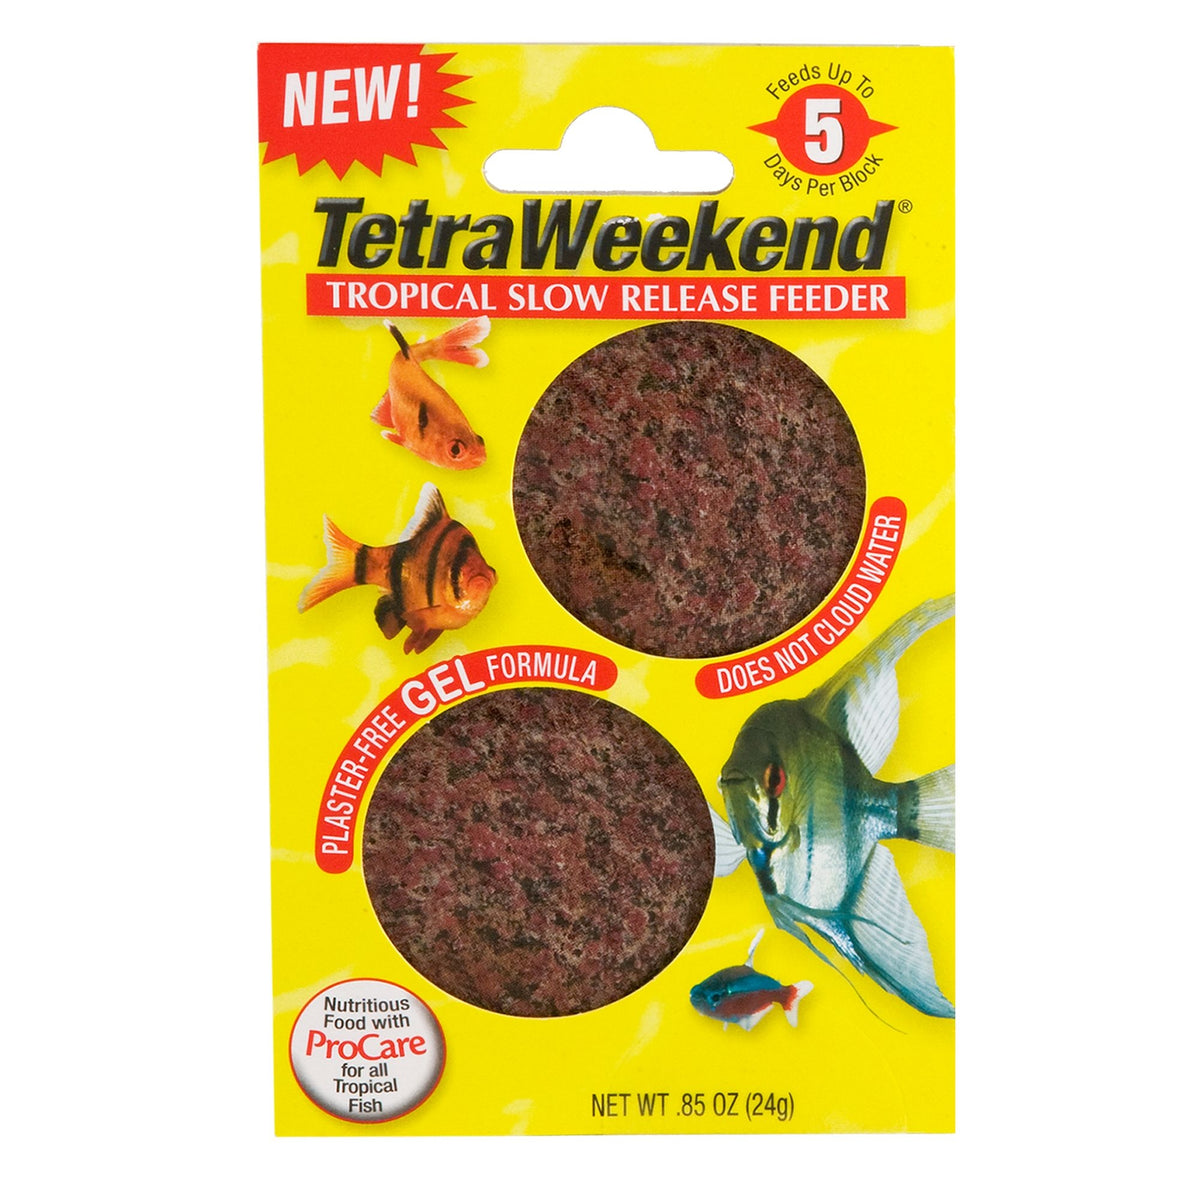 Tetra Weekend Tropical Fish Food Feeding Block